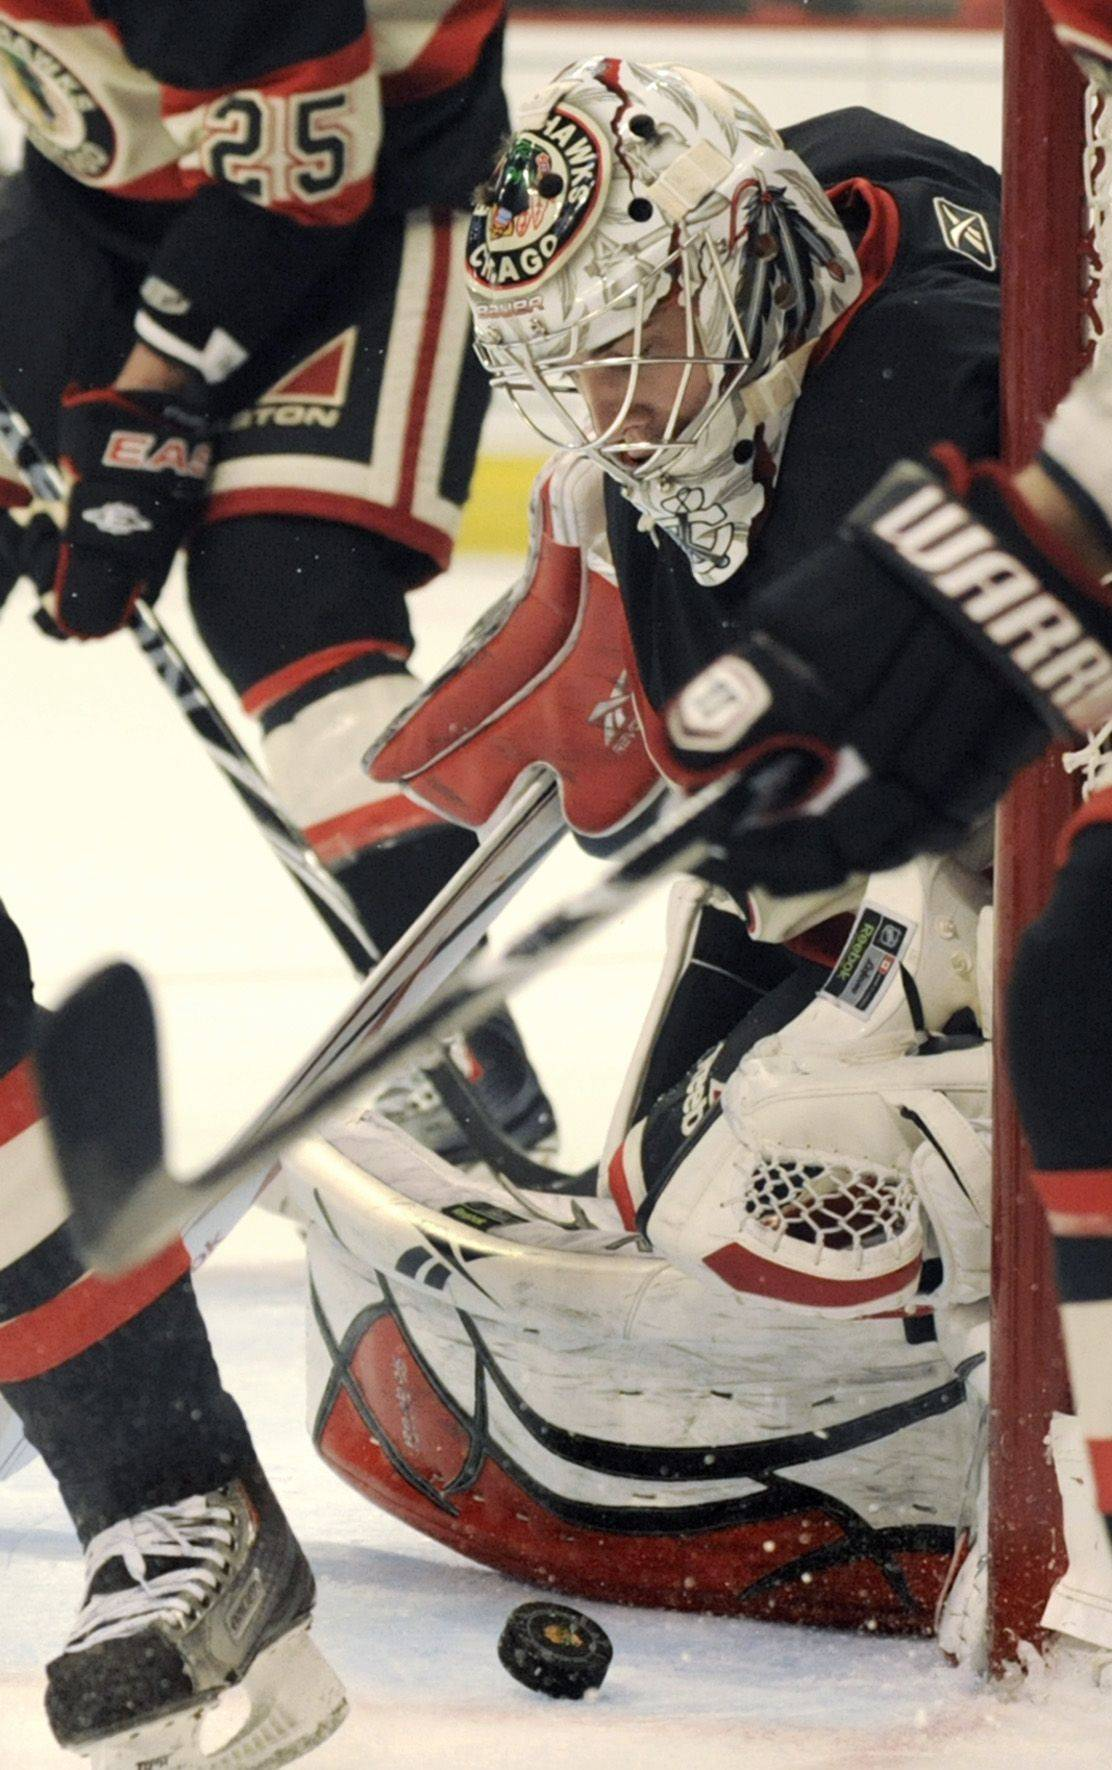 Blackhawks goalie Corey Crawford makes a save against the Lightning.